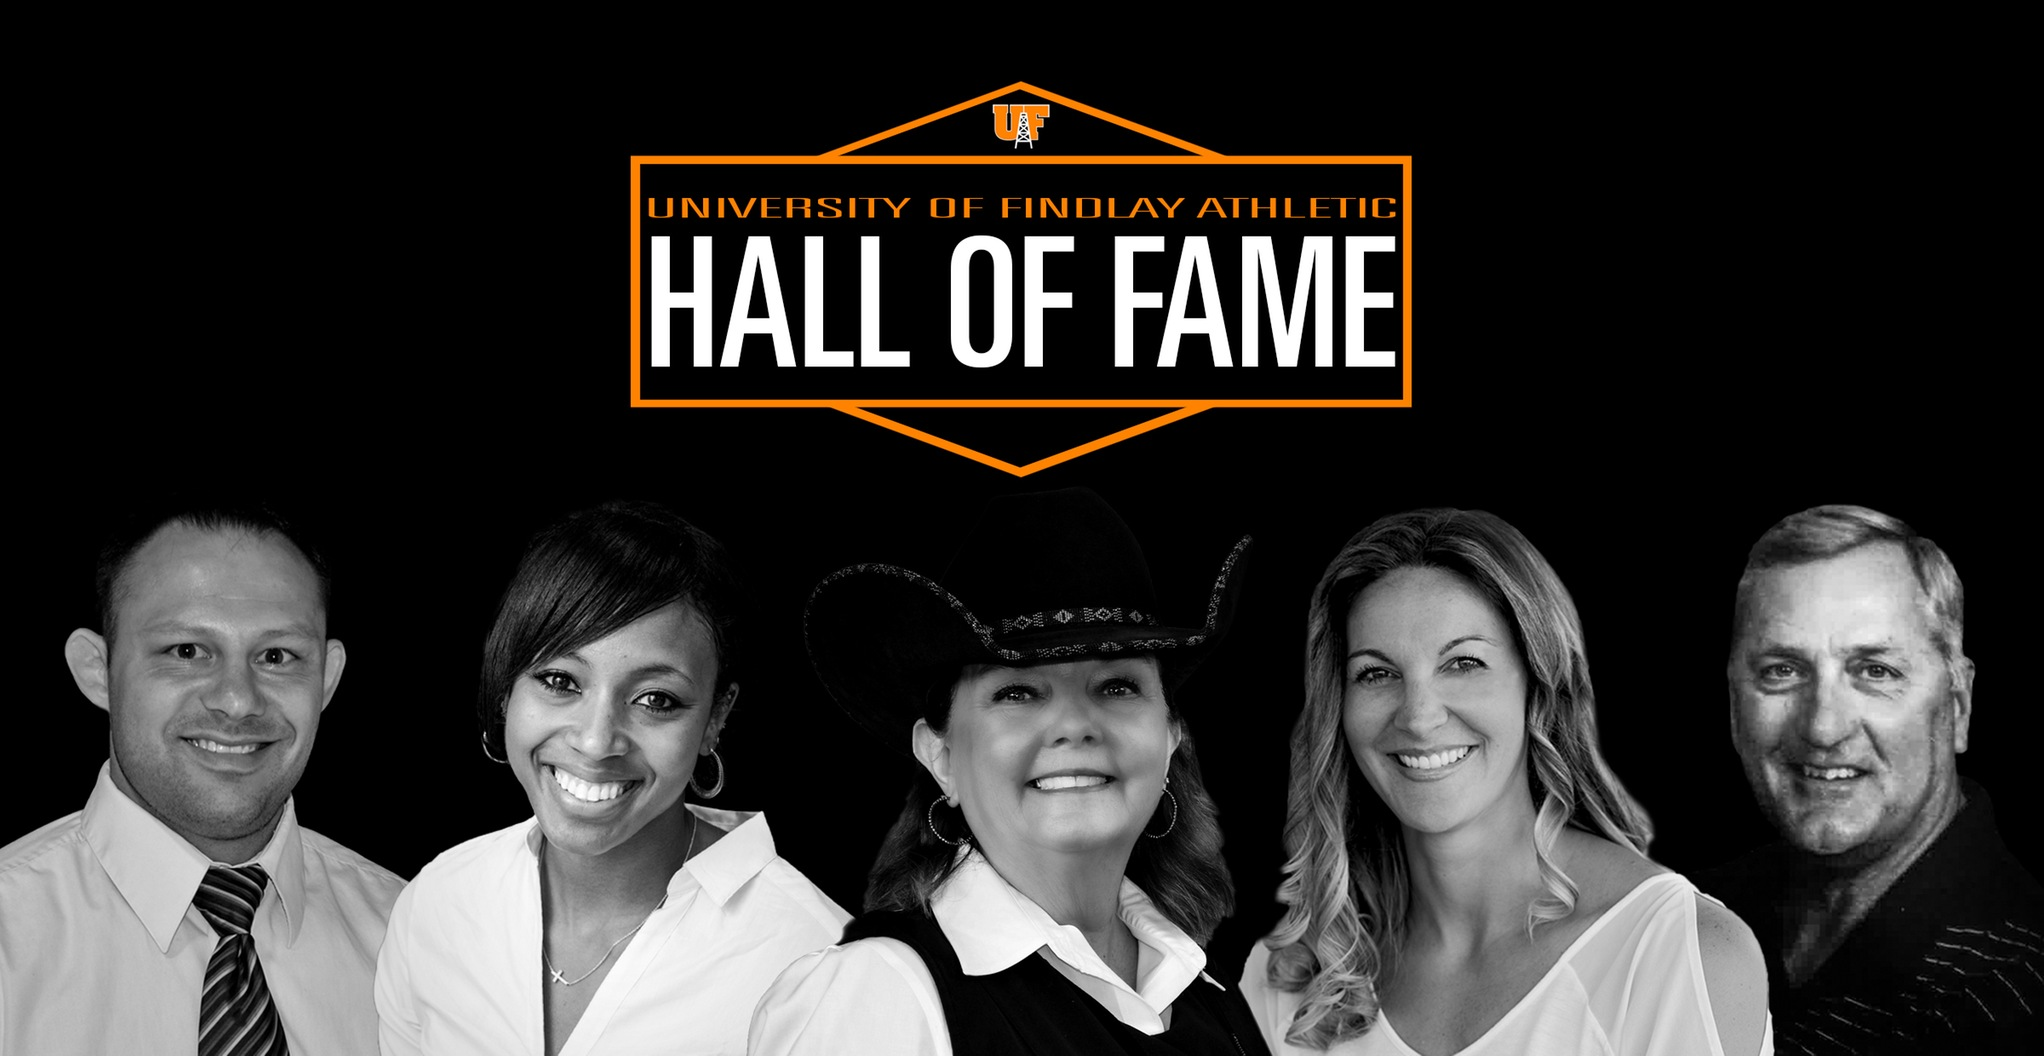 Oilers Hall of Fame Ceremony Slated for Feb. 2